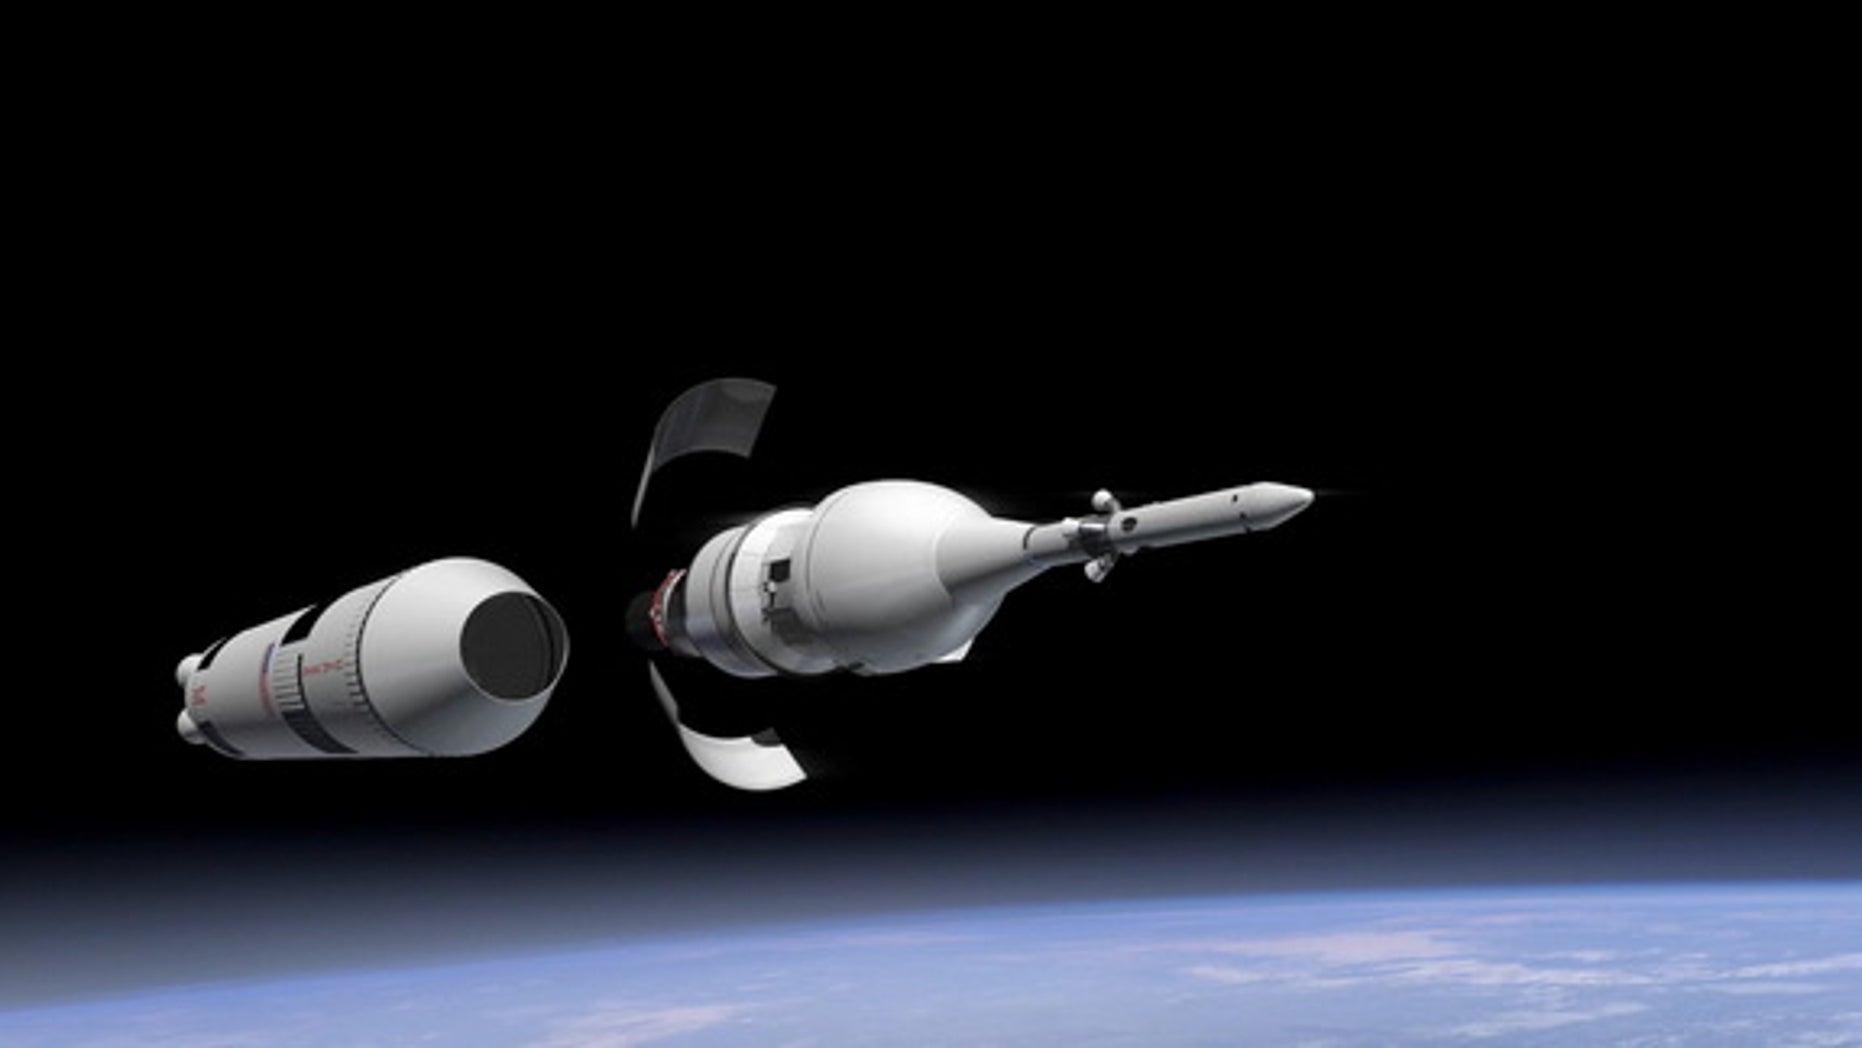 An artist's illustration of a portion of Orion's first test flight just after launch.